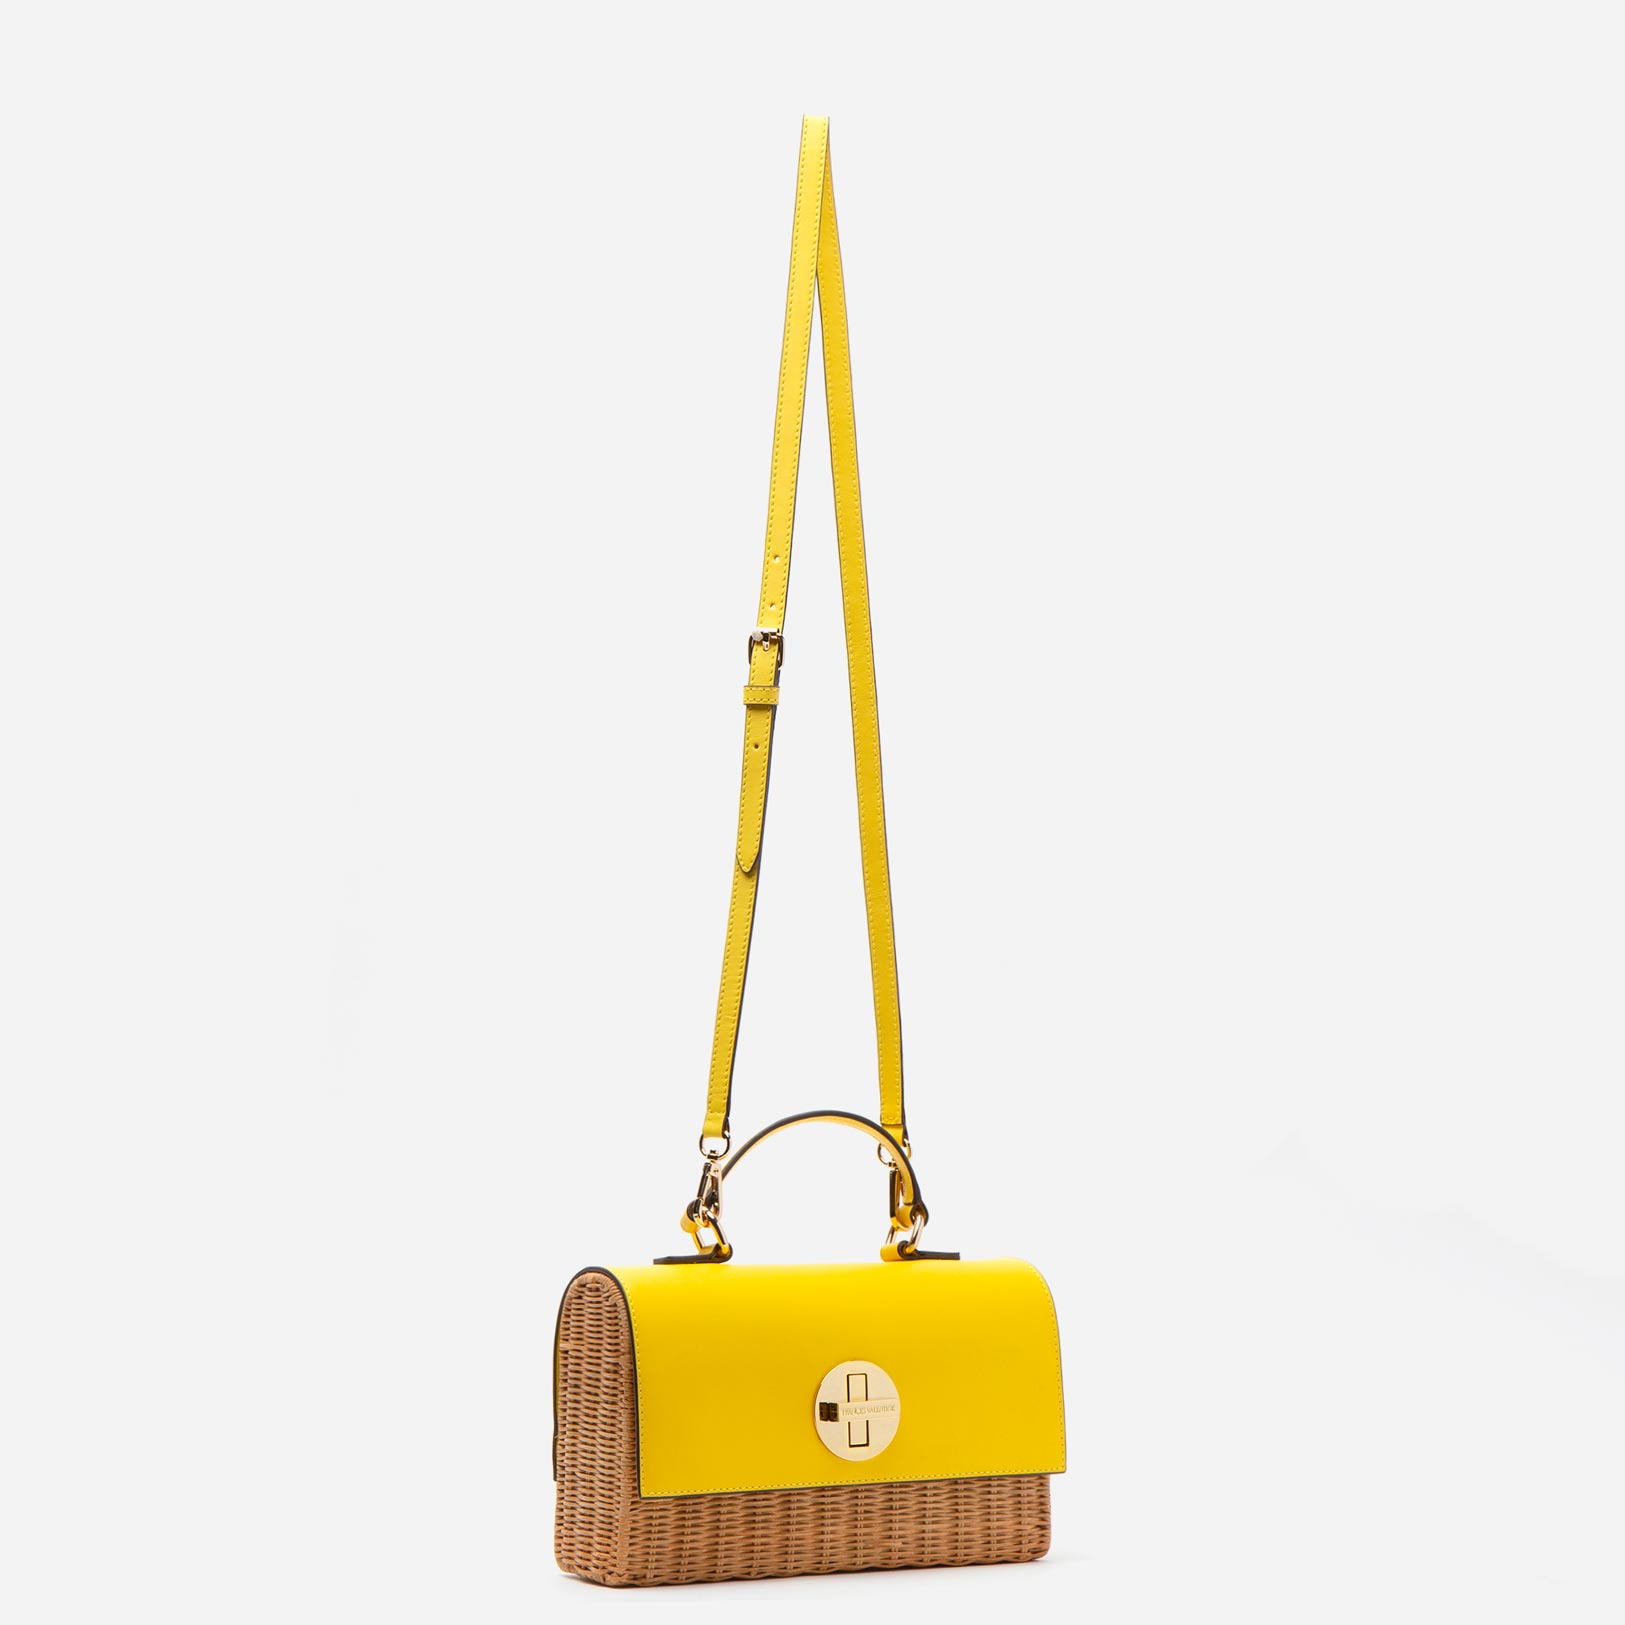 Bess Wicker Basket Yellow